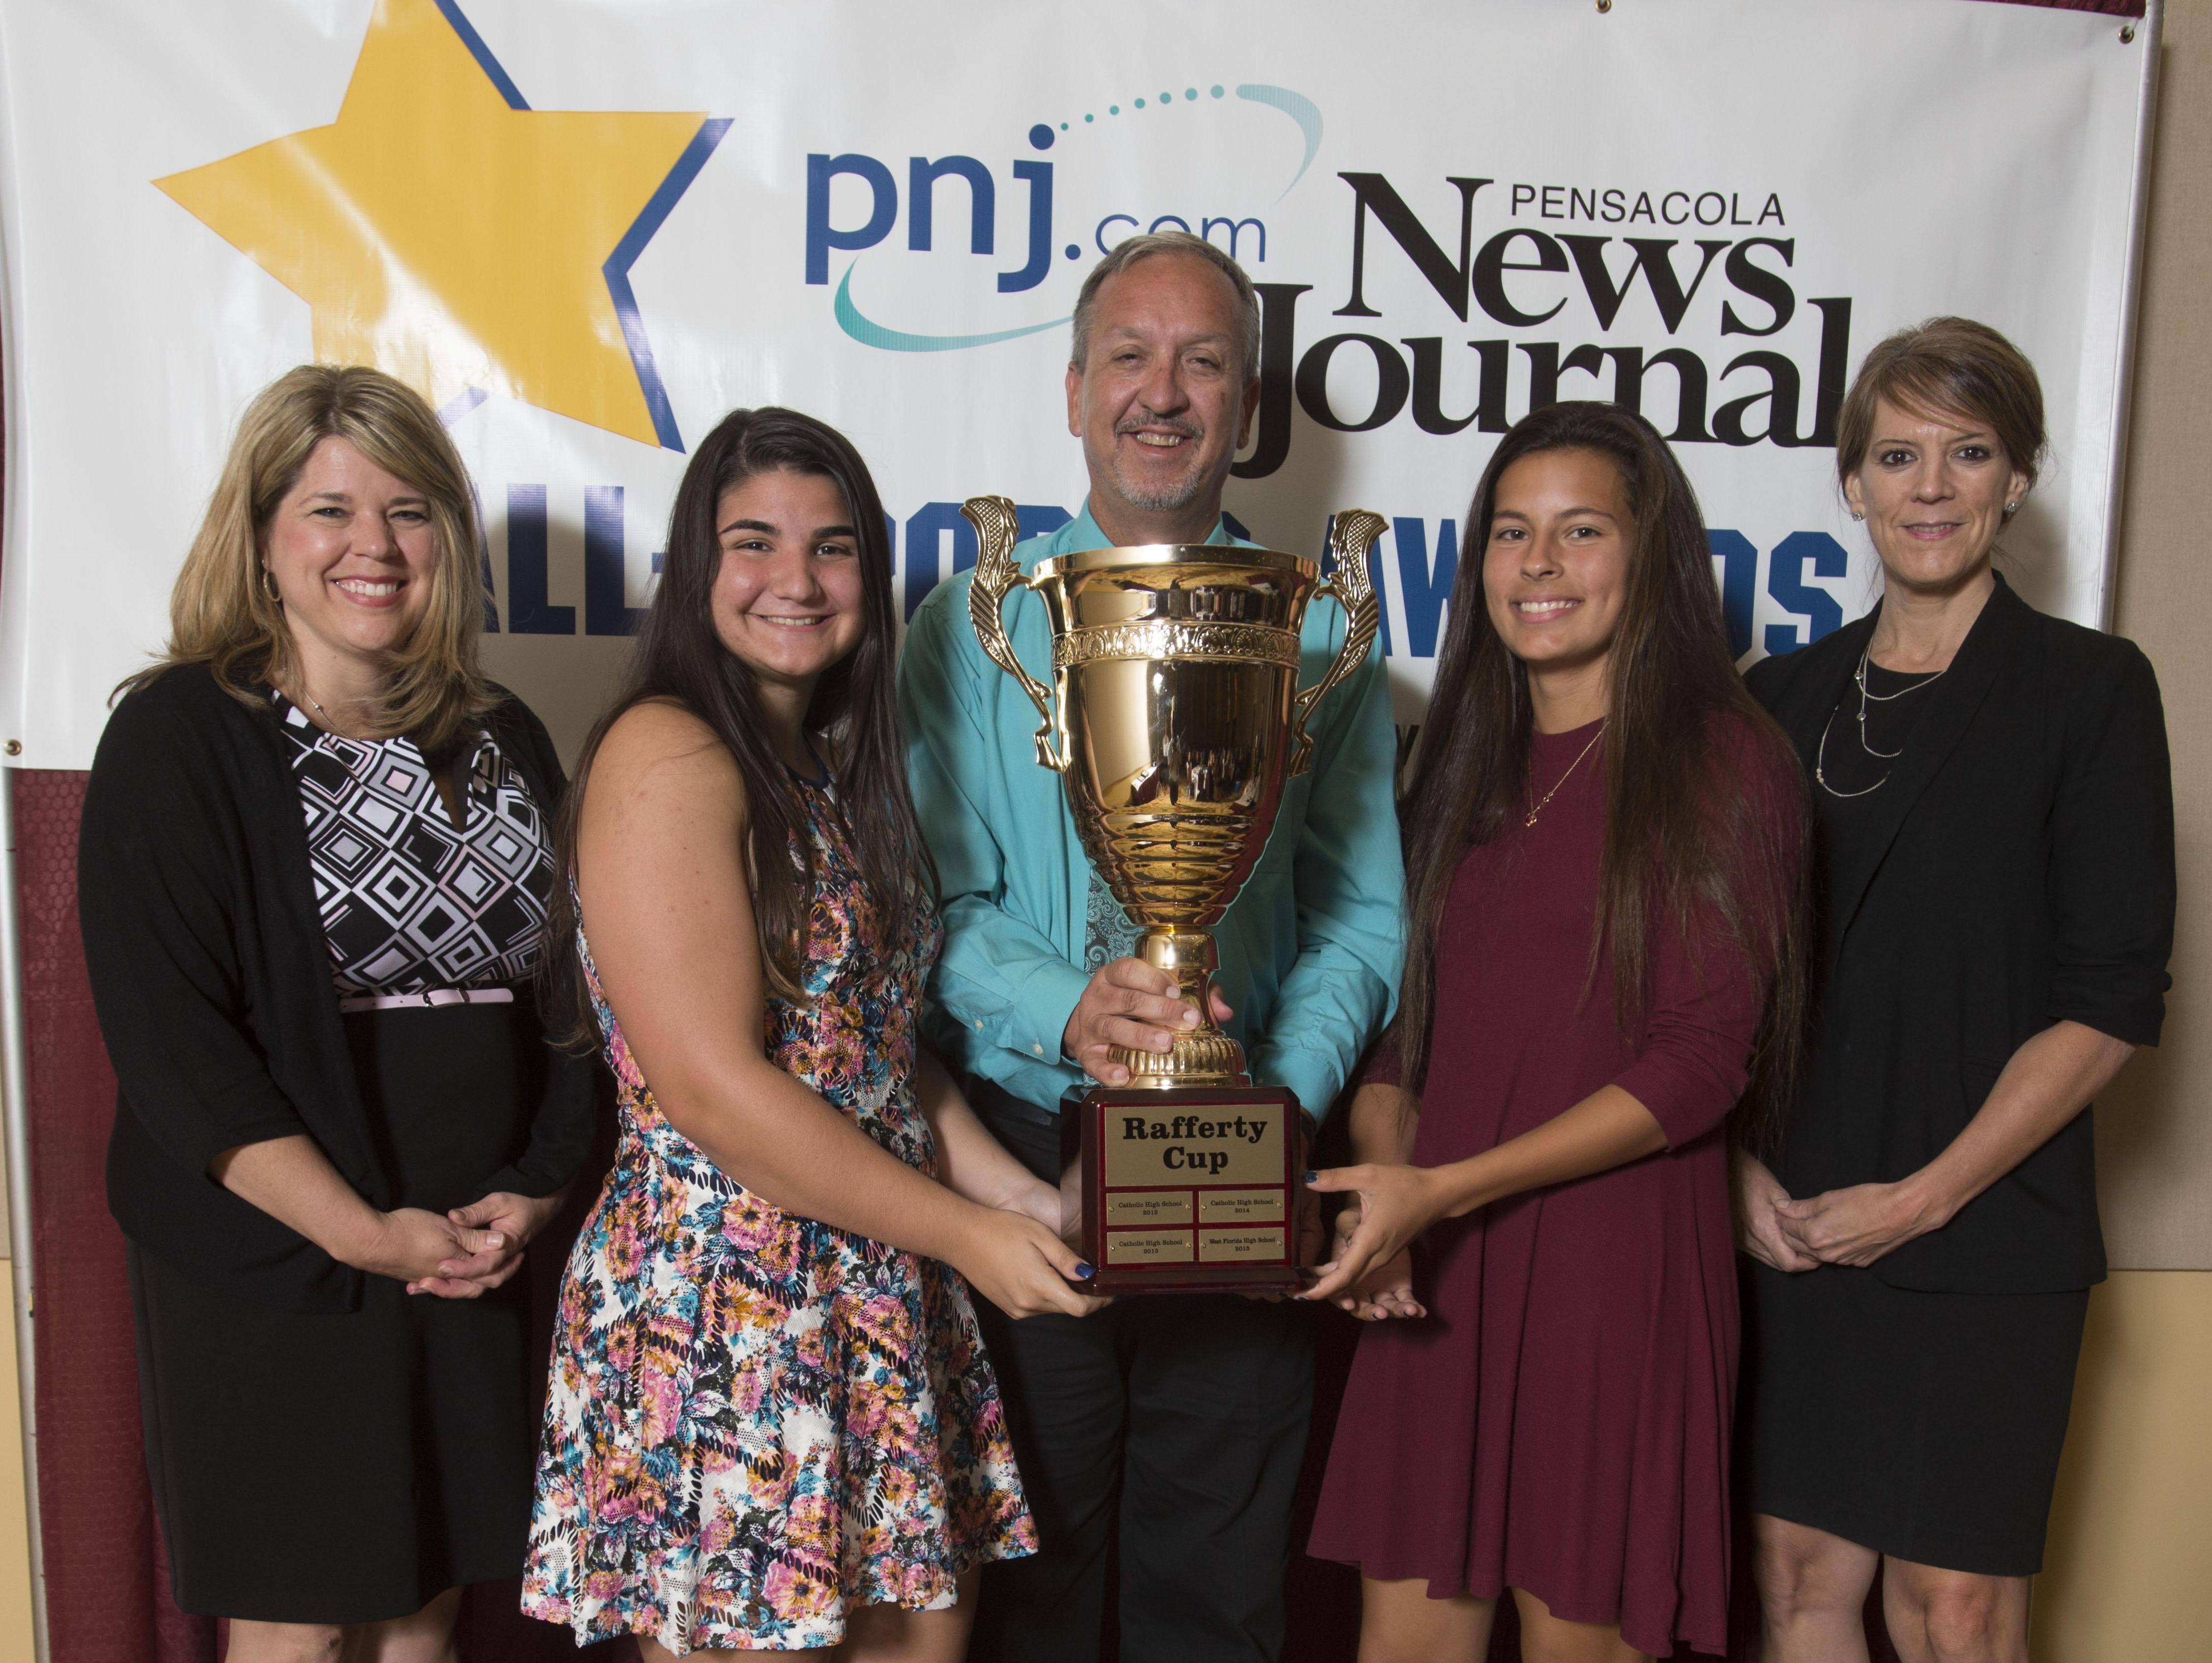 Scenes from the Pensacola News Journal All-Sport Awards Banquet Wednesday night.